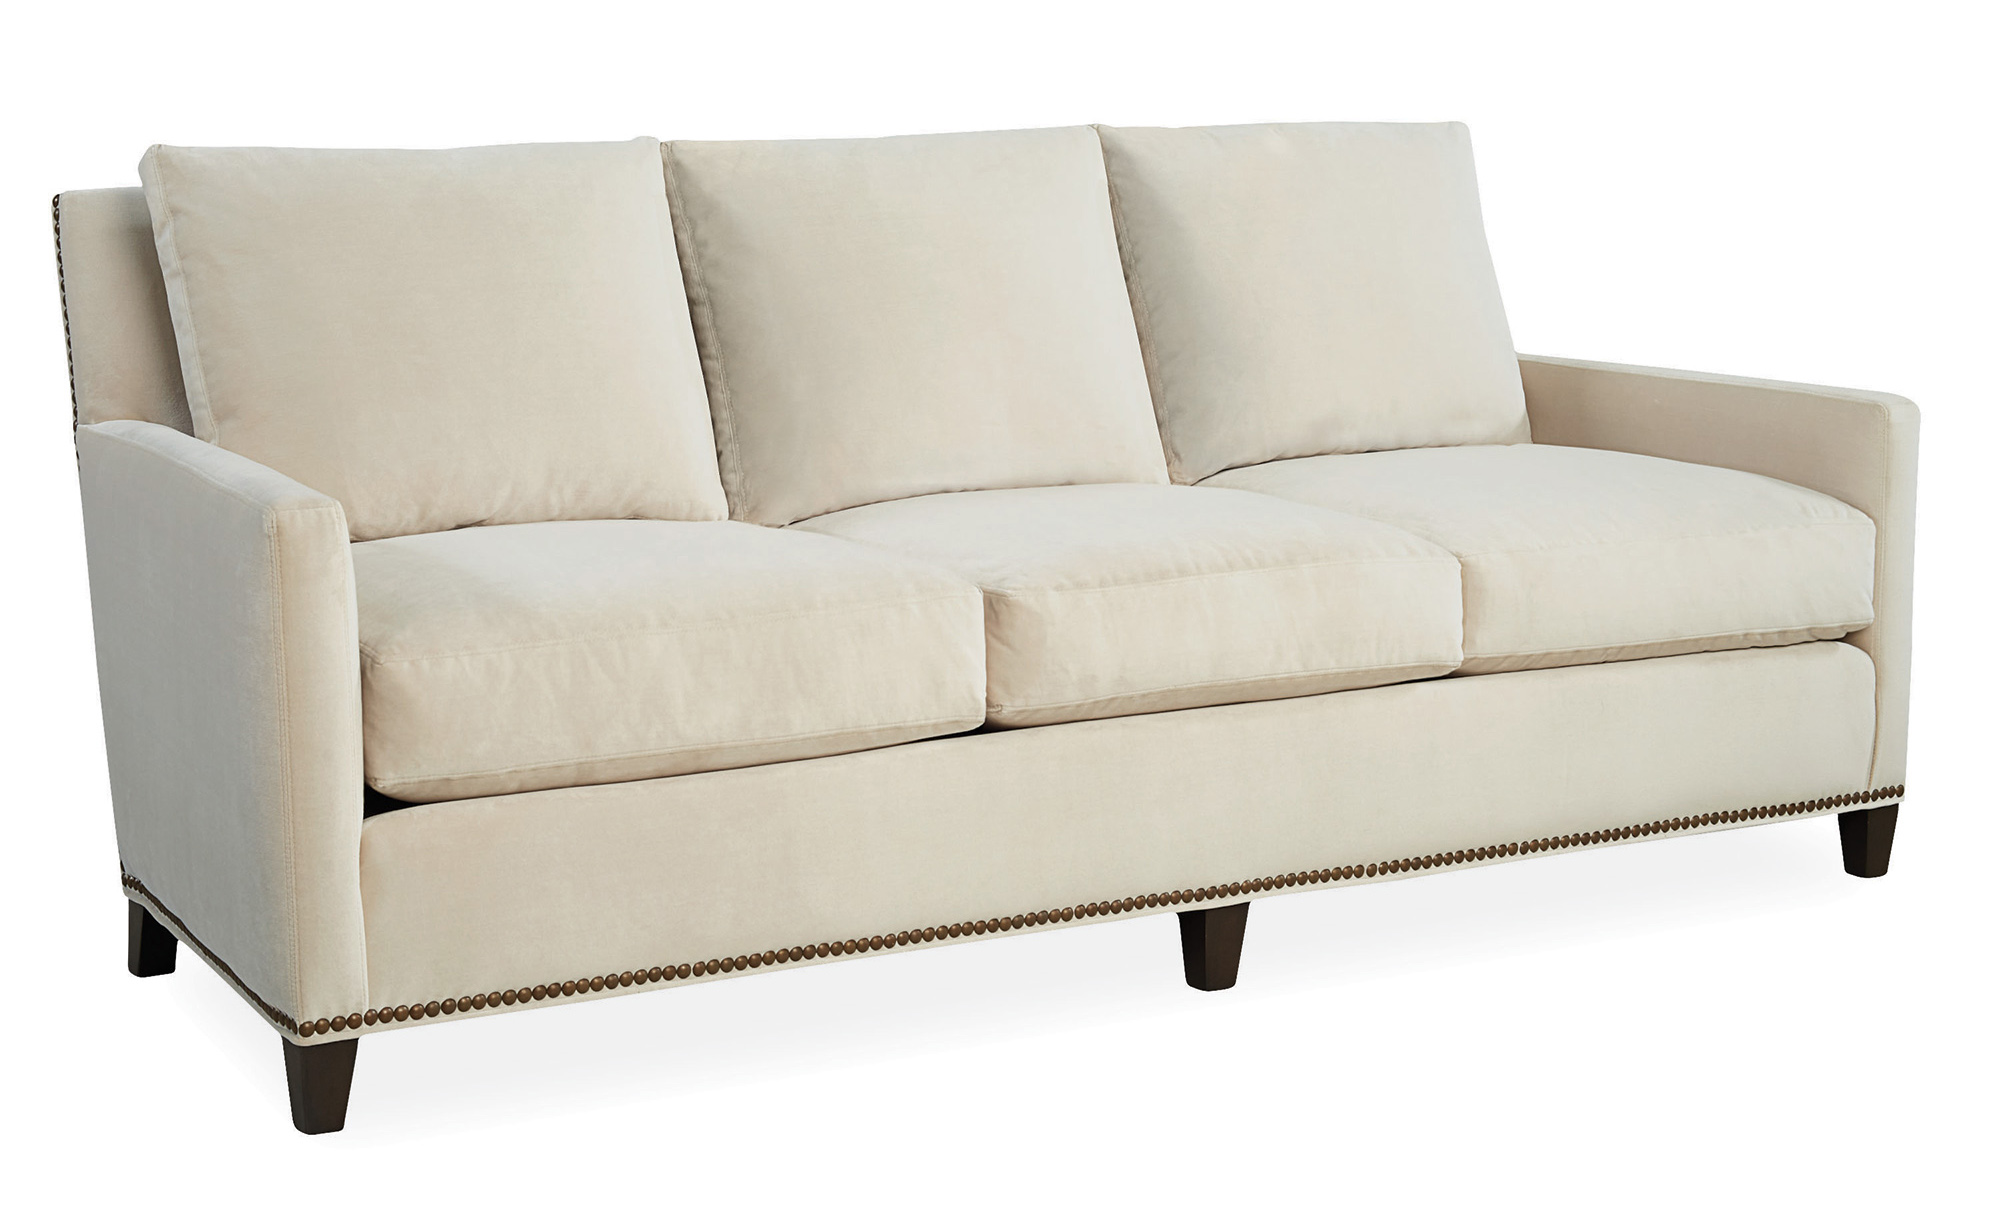 lee industries sofa prices leather made in usa sofas 2452 03 lr